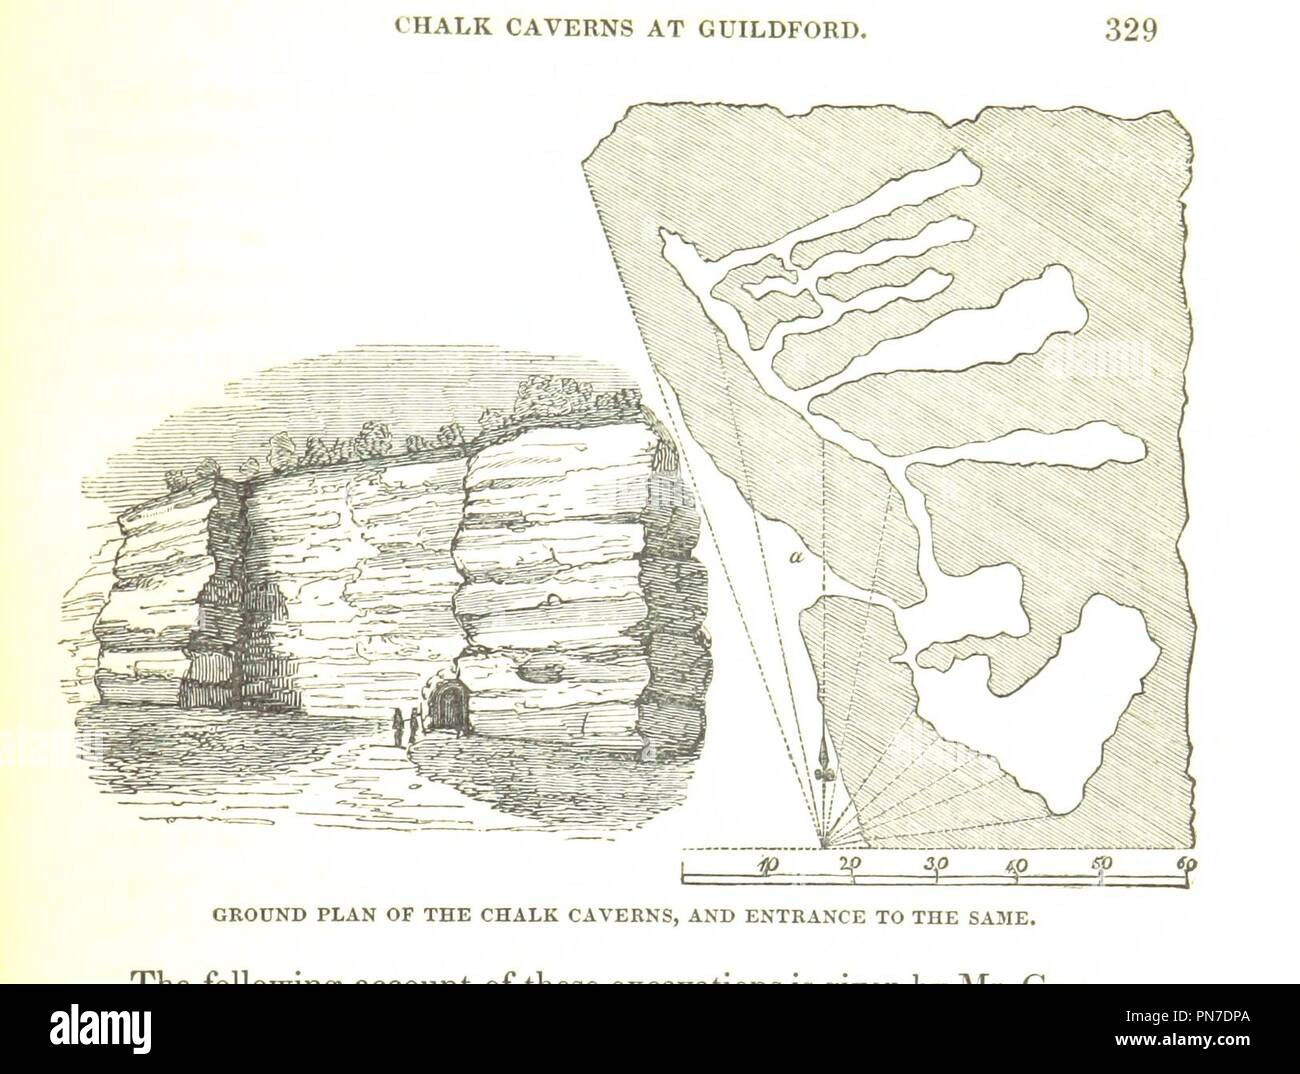 Image  from page 365 of '[A Topographical History of Surrey by E. W. Brayley . assisted by John Britton . and E. W. Brayley, jun. . The geological section by Gideon Mantell. (The illustrative department under the super0006. - Stock Image